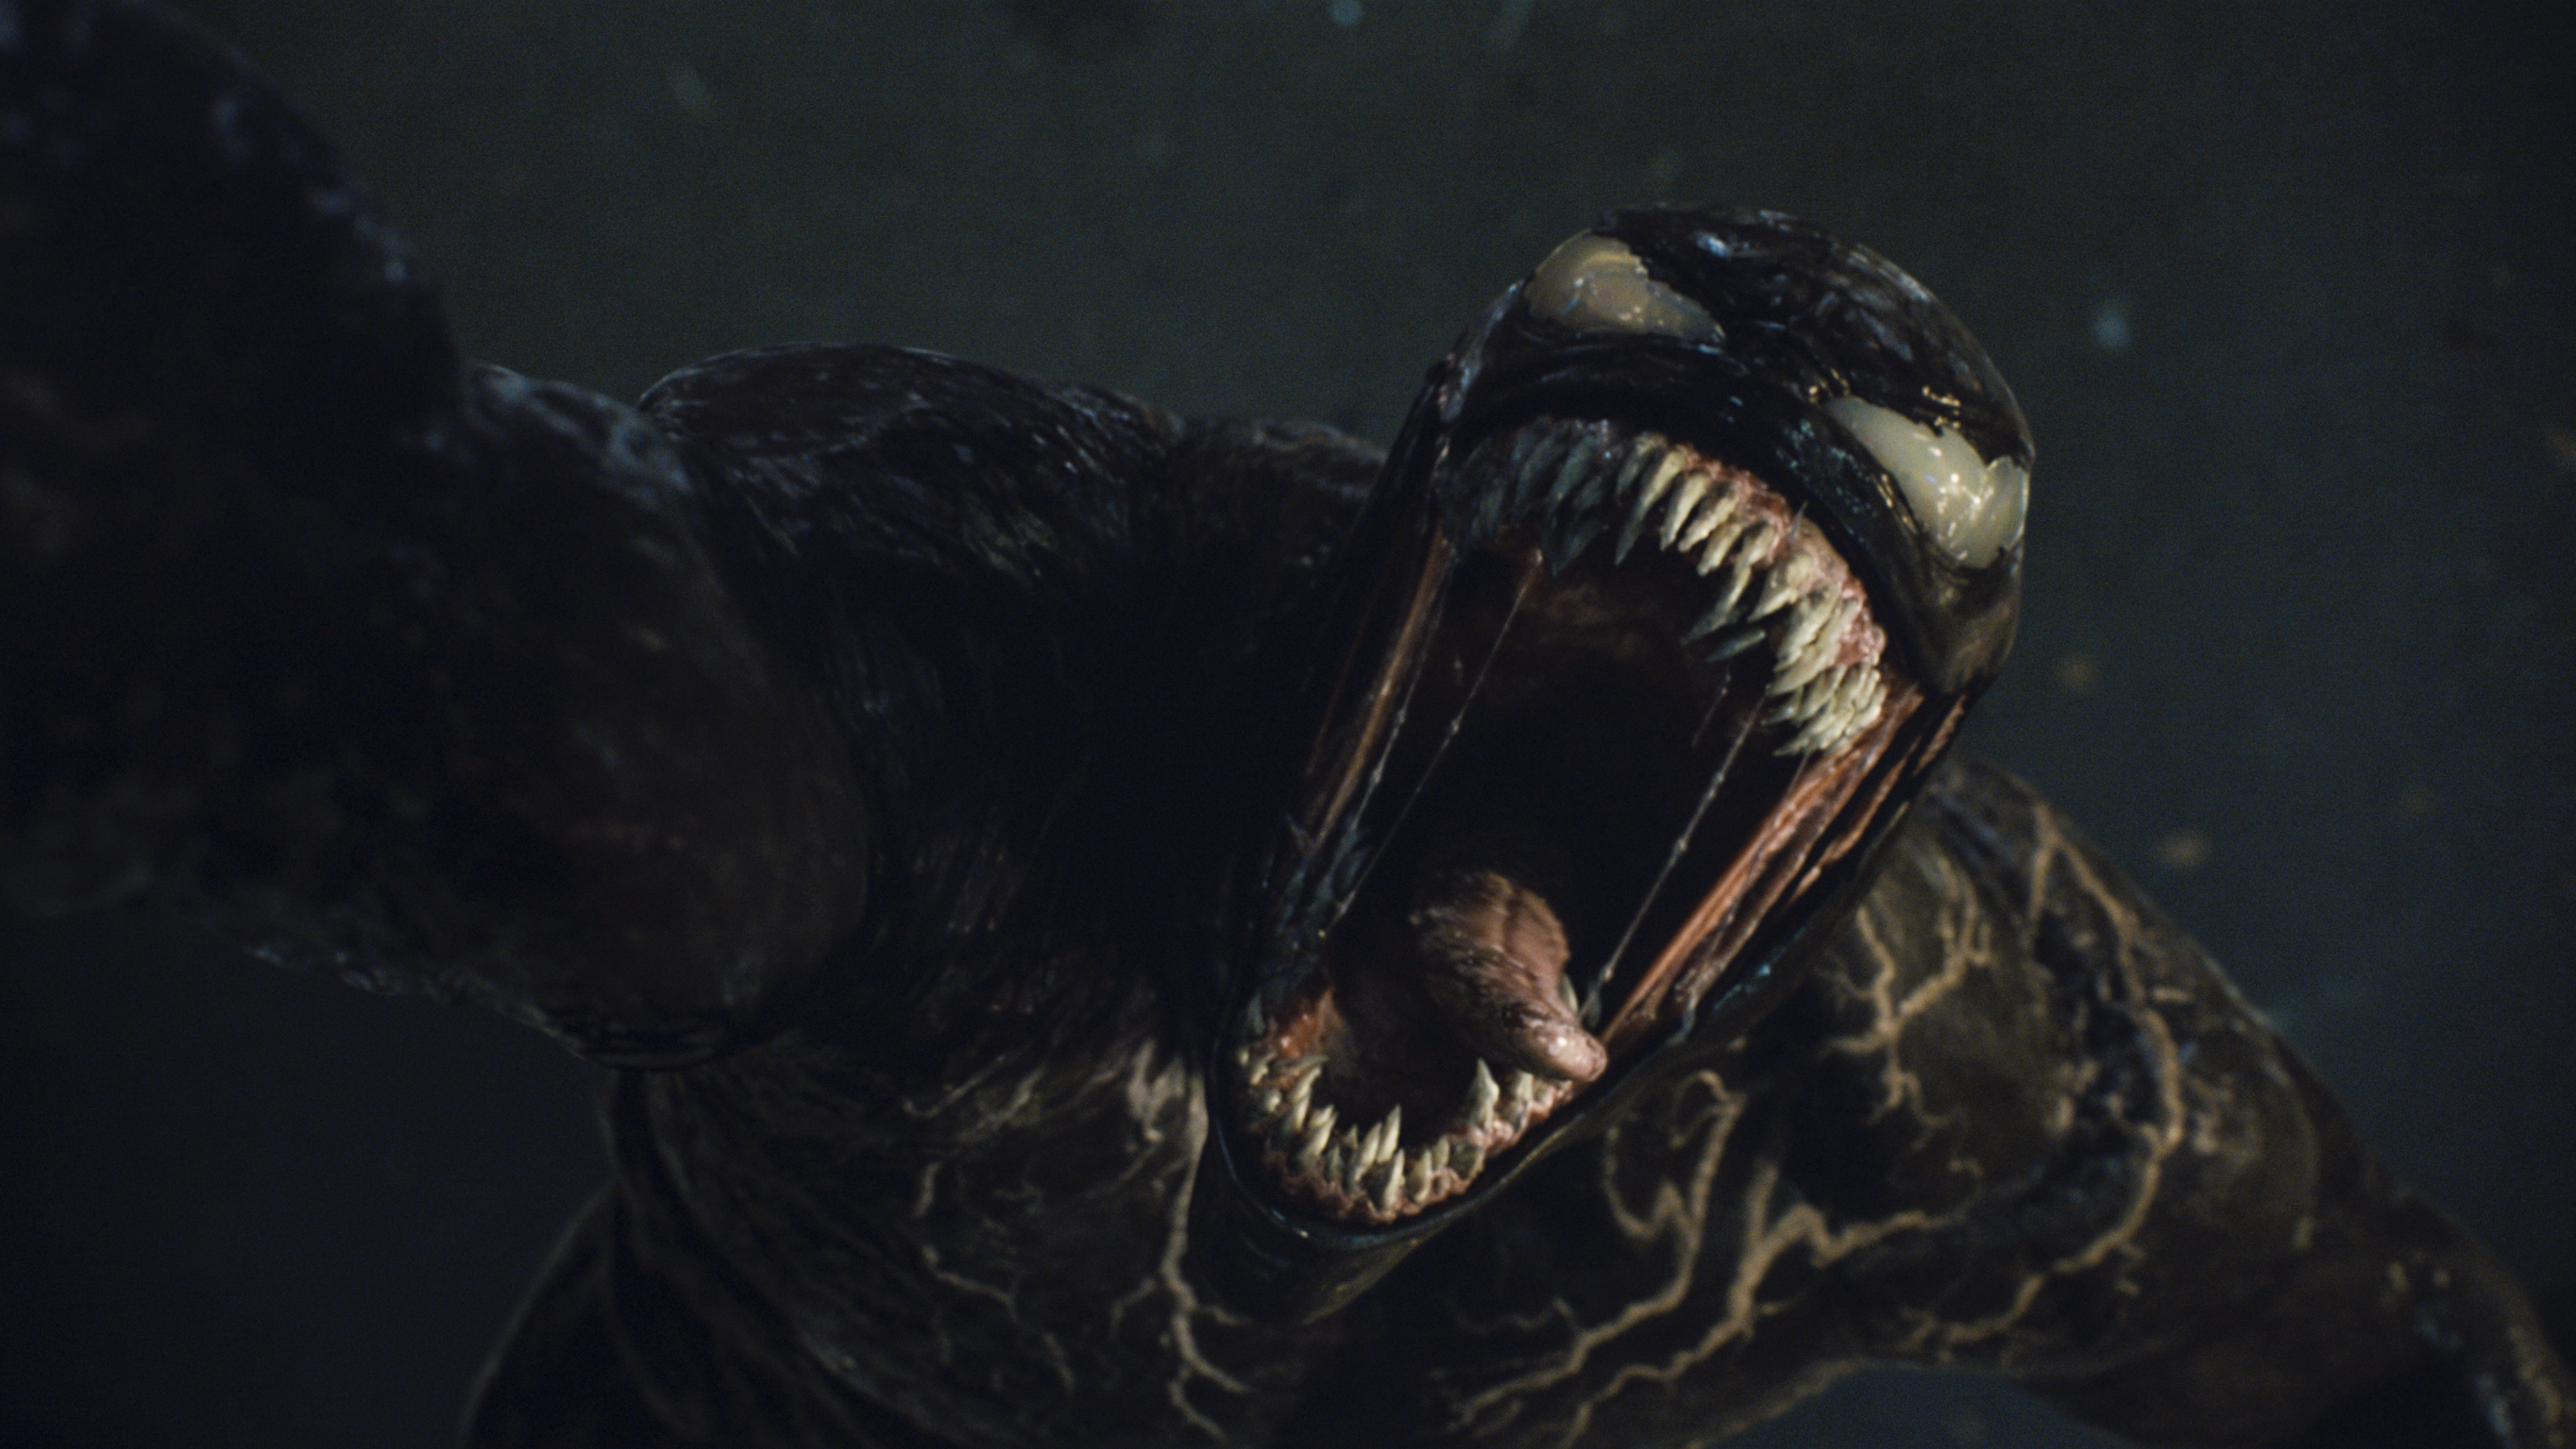 Venom screams in Let There Be Carnage